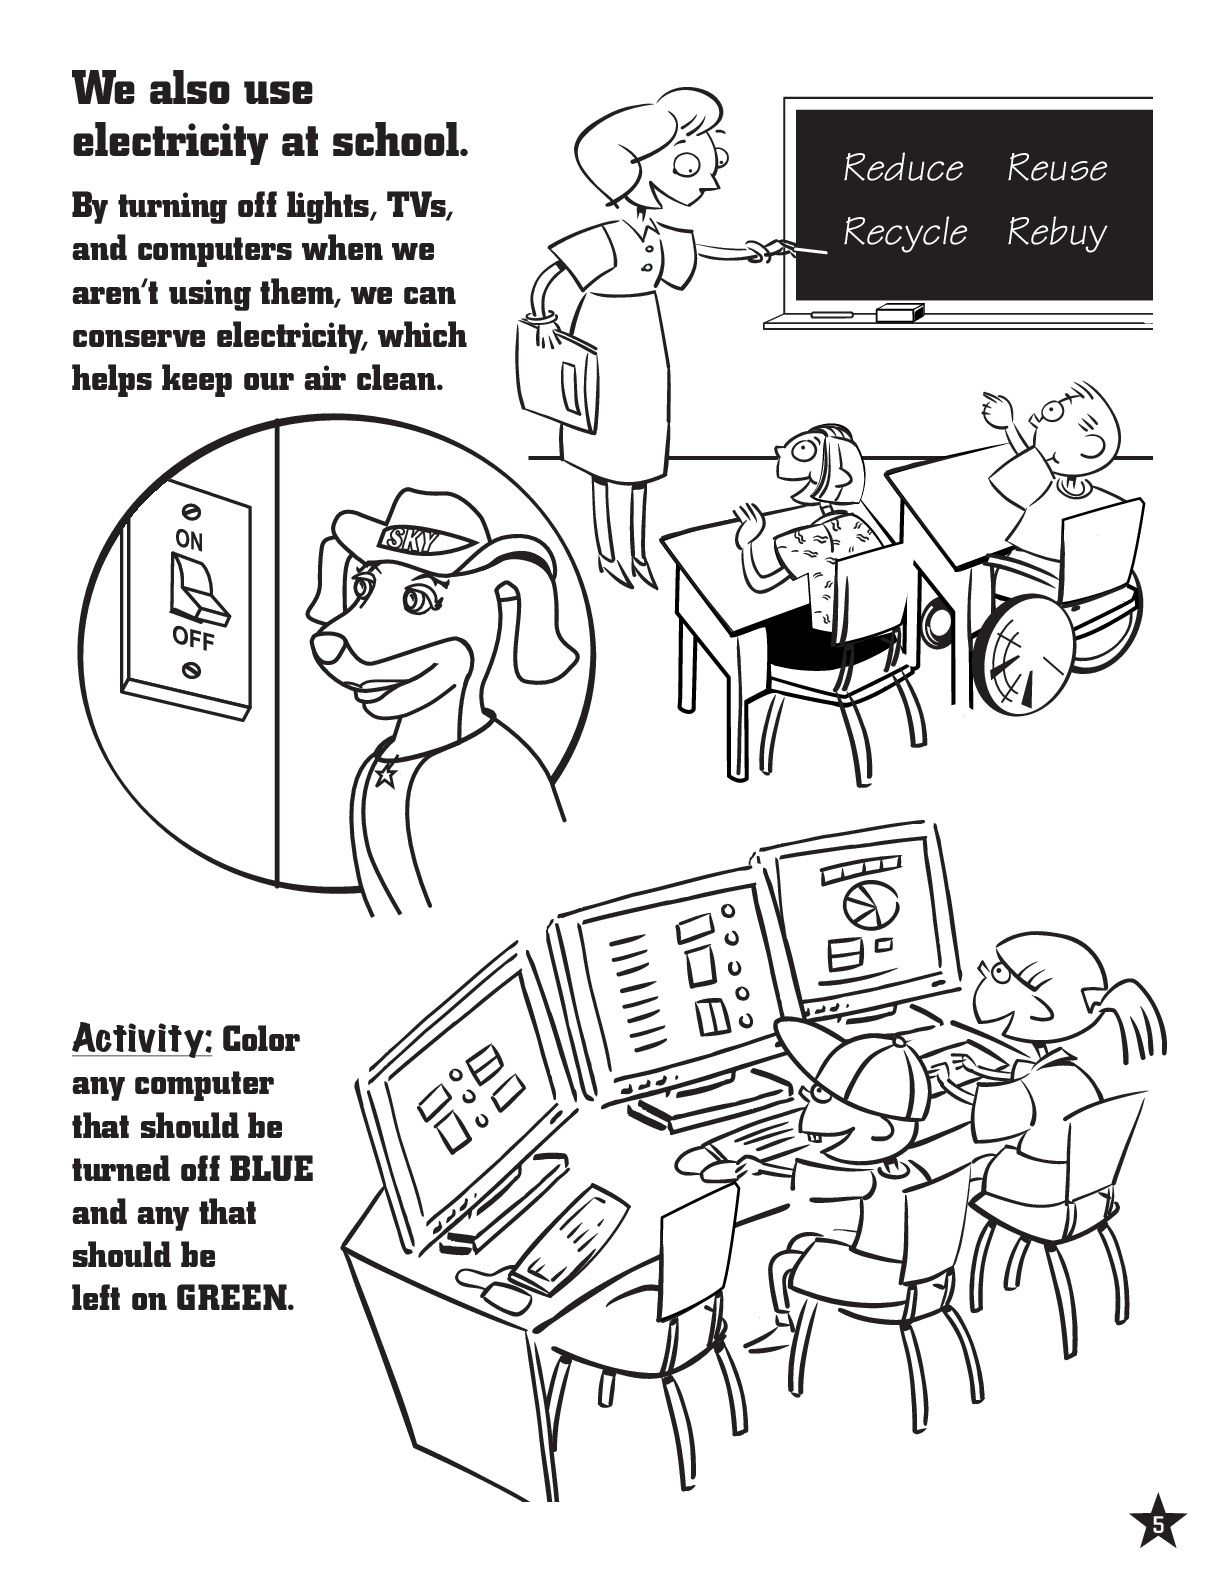 Energy Conservation Activity & Coloring Page #